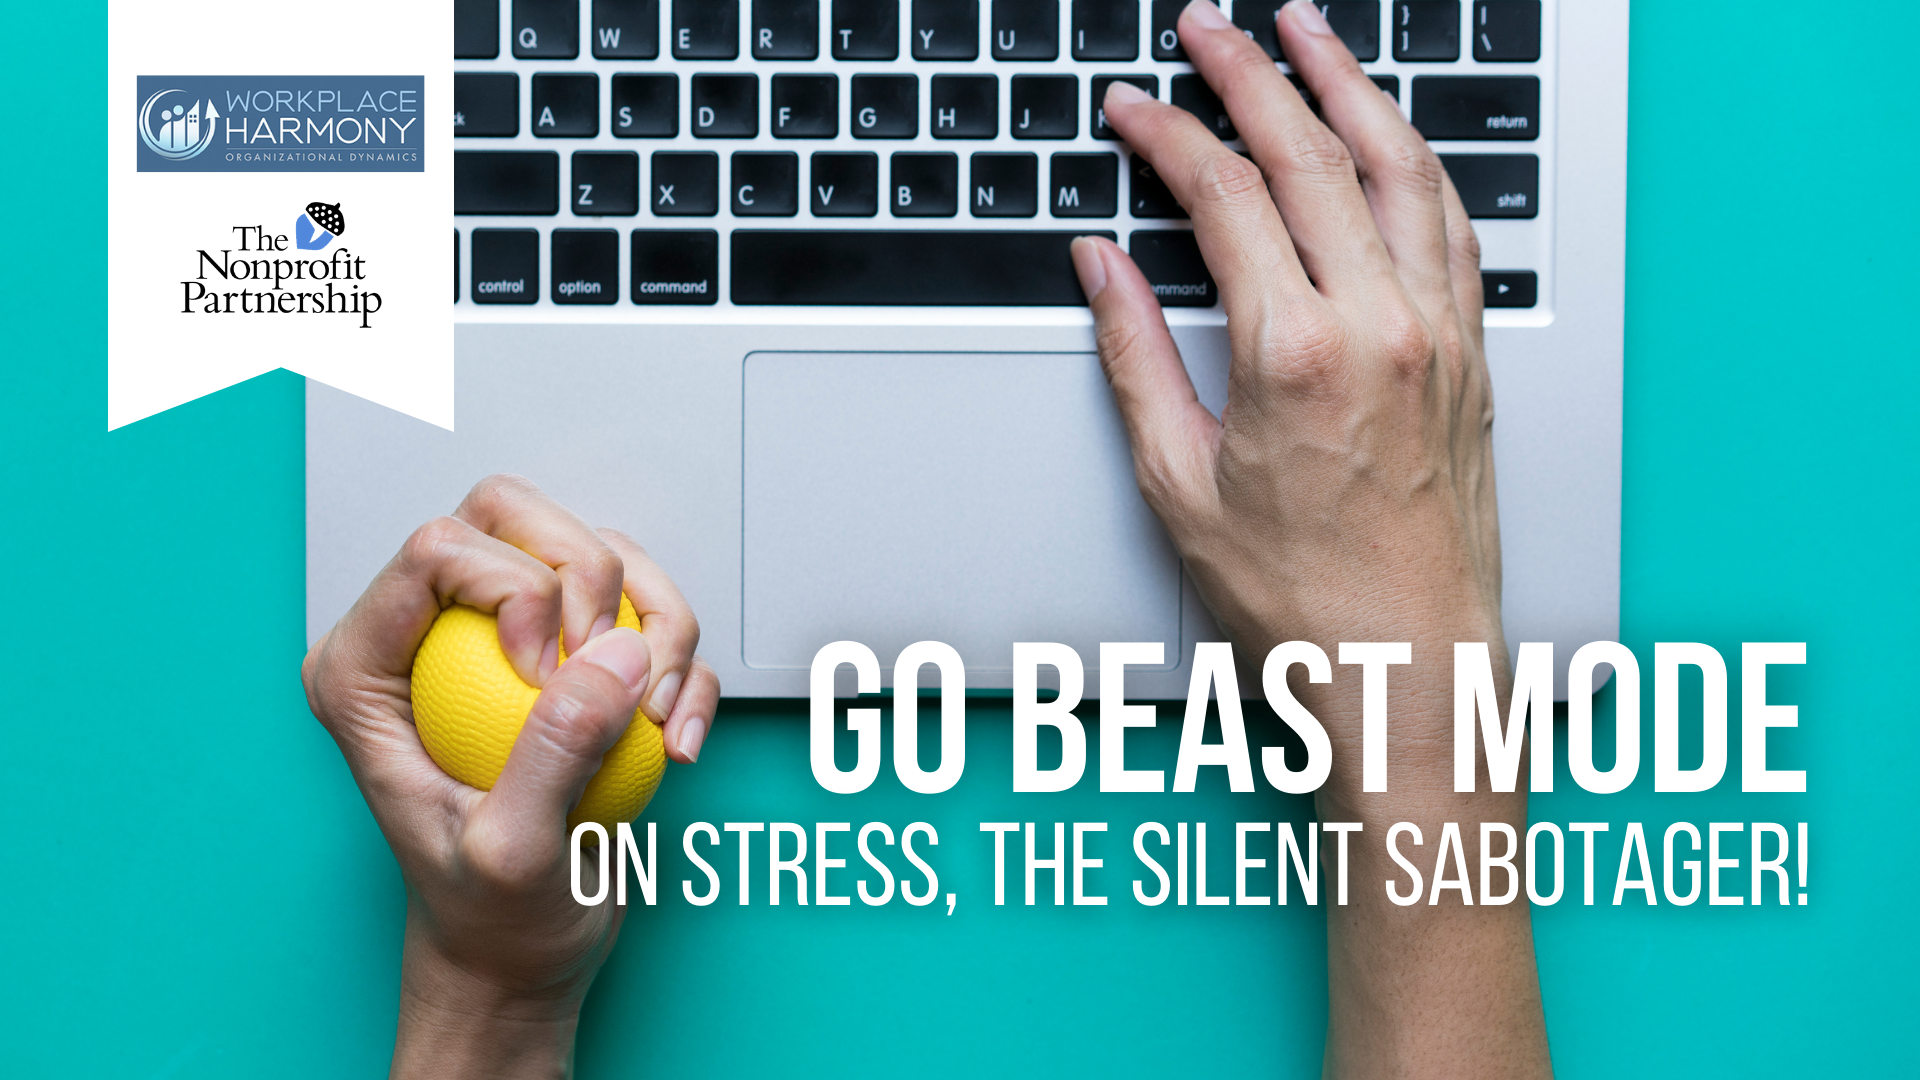 [Zoom Meeting] Go BEAST MODE on Stress, the Silent Sabotager!